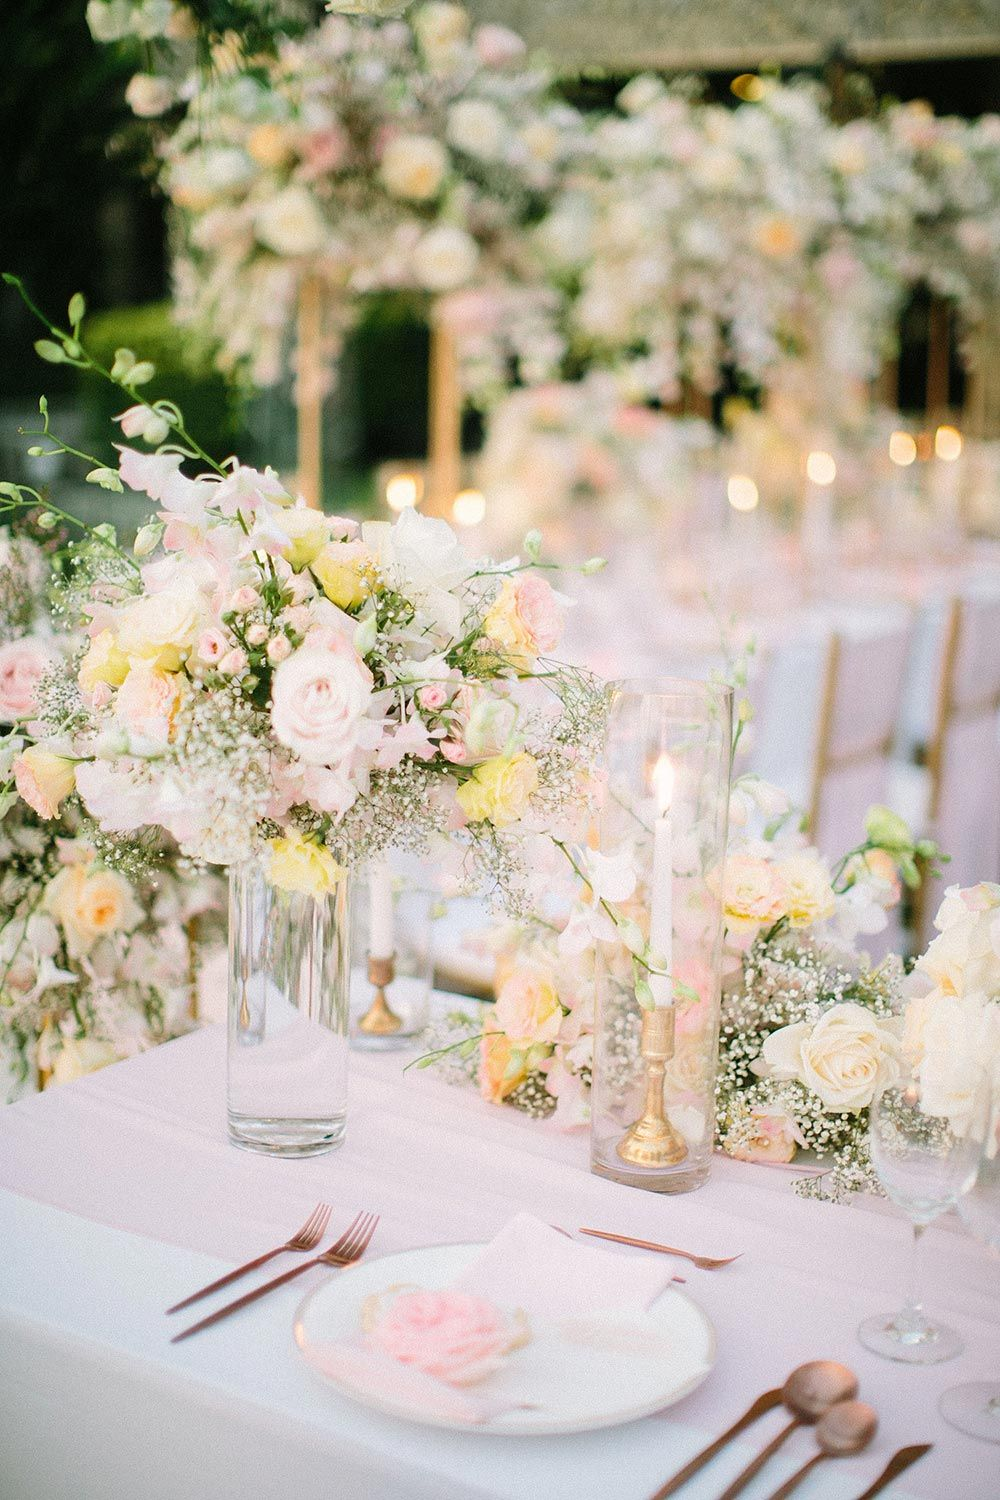 Mesmerizing Phuket Wedding with Soft Pastels